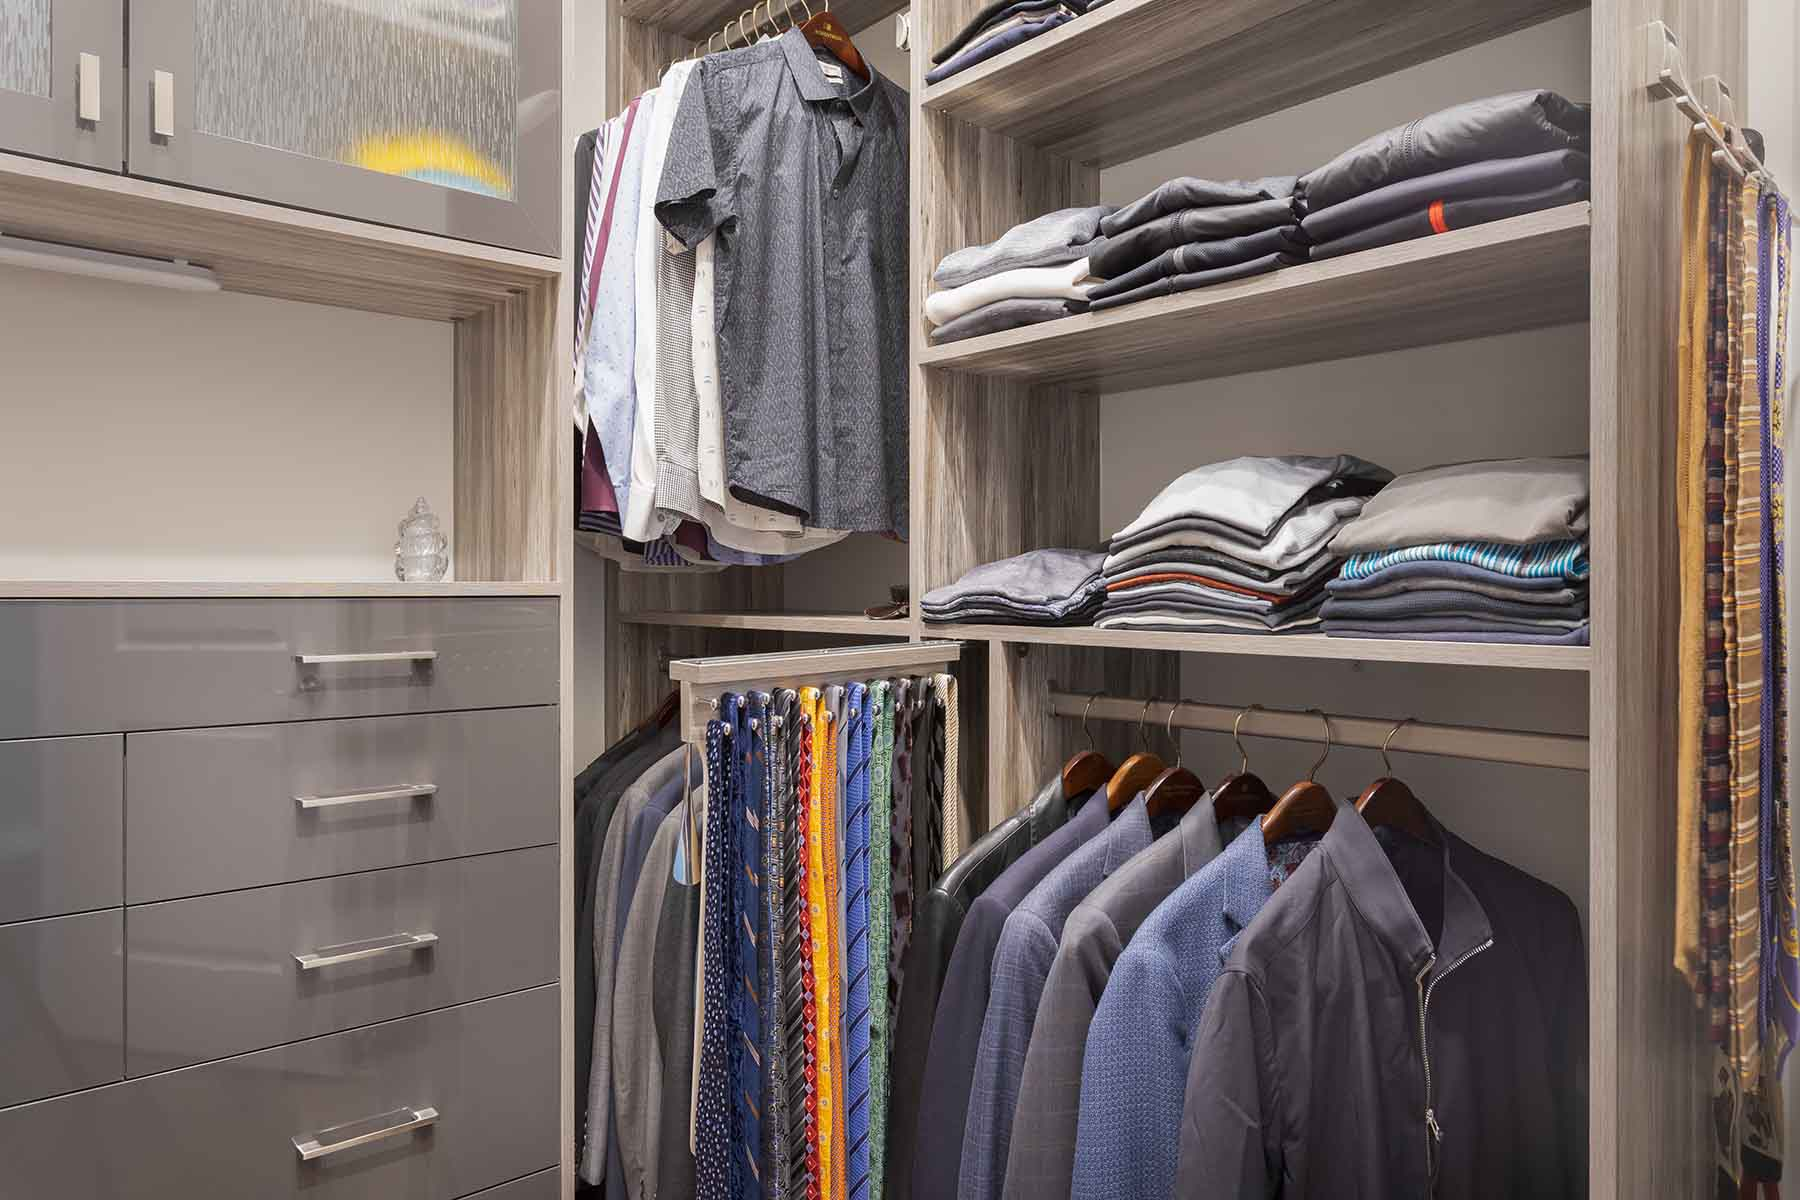 His walk-in closet with clothing organized